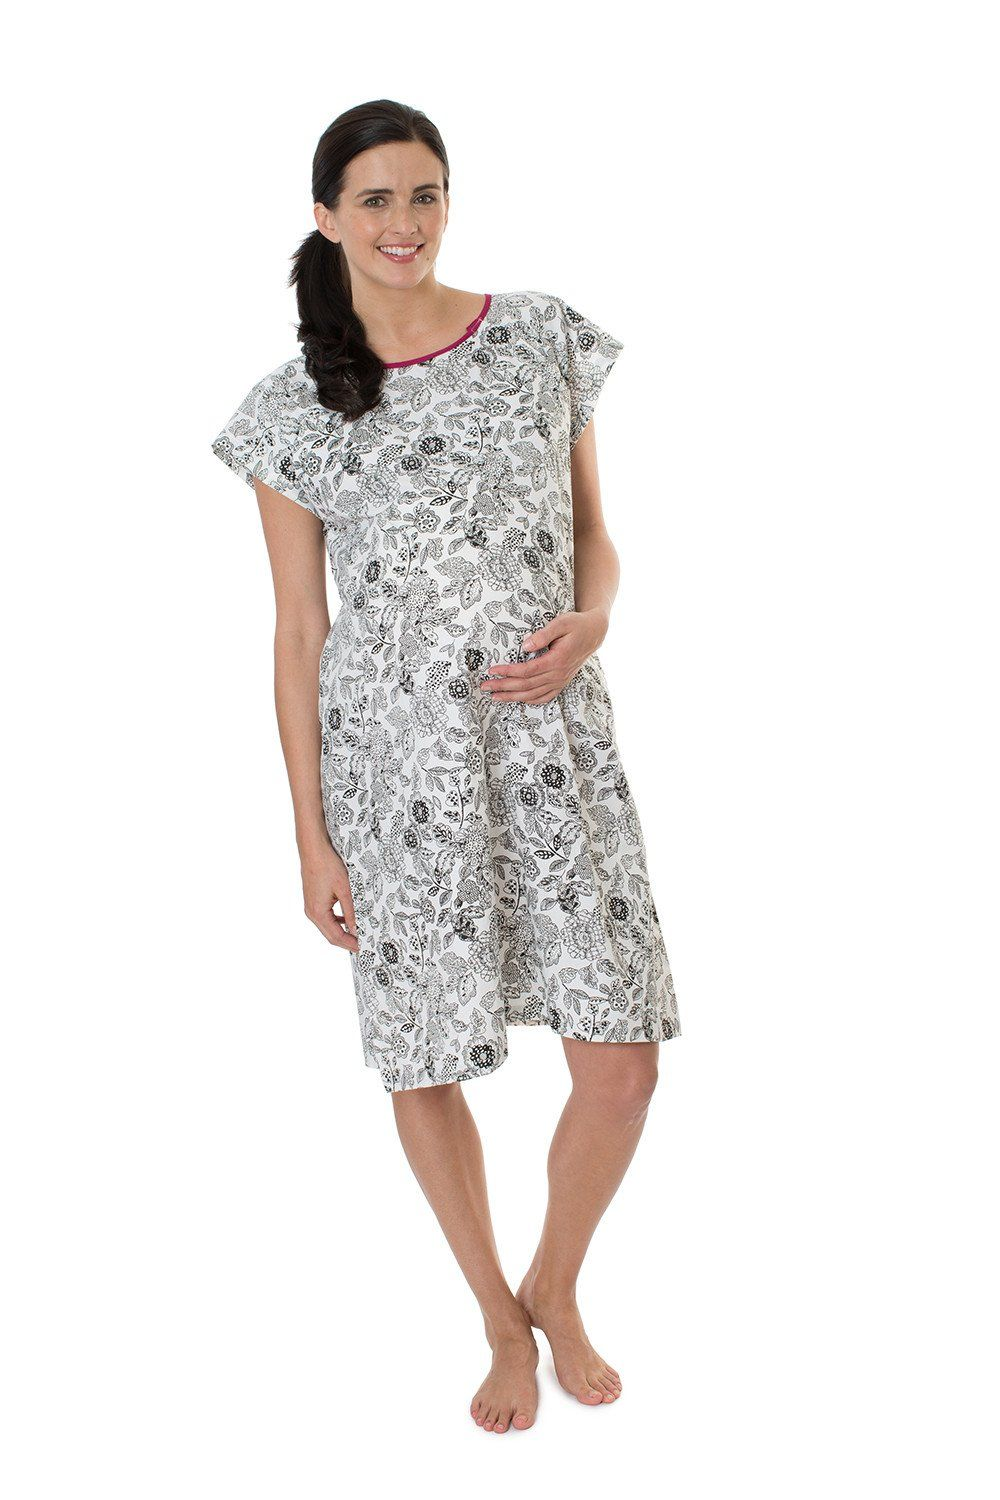 Ella Gownie Maternity Delivery Labor Hospital Birthing Gown   Rigby ...